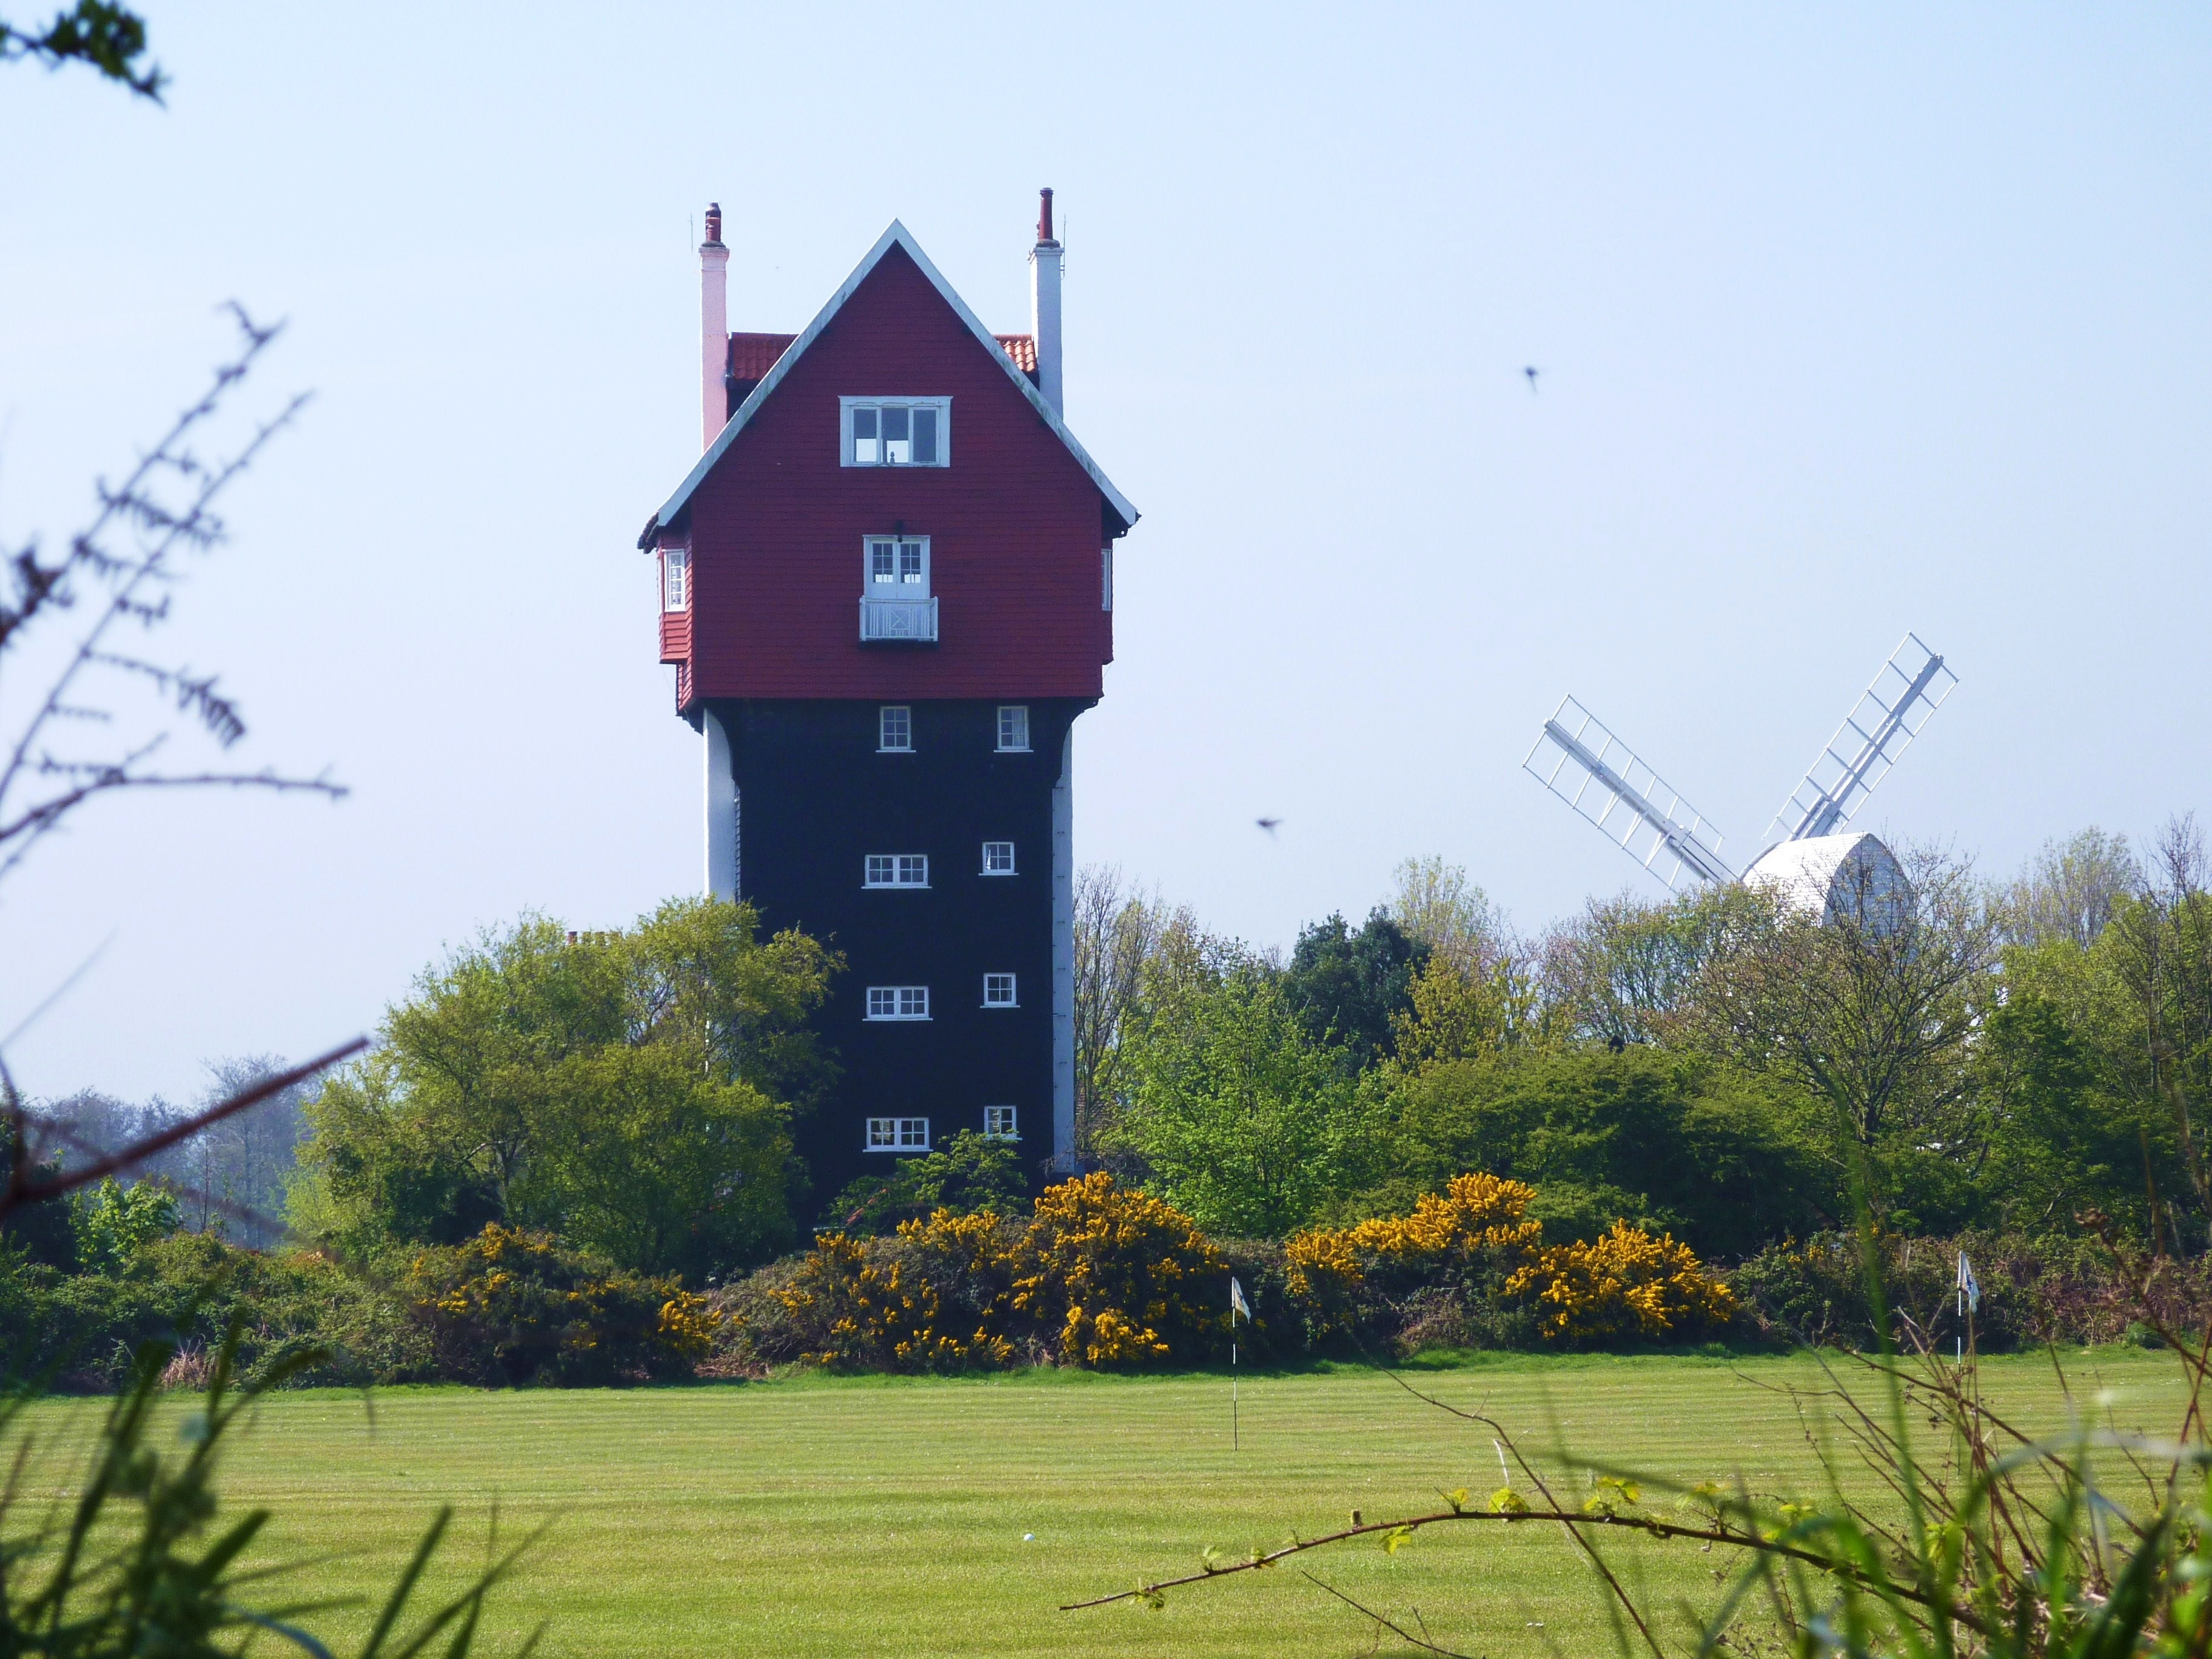 House in the Clouds and windmill - overlooking the golf course.